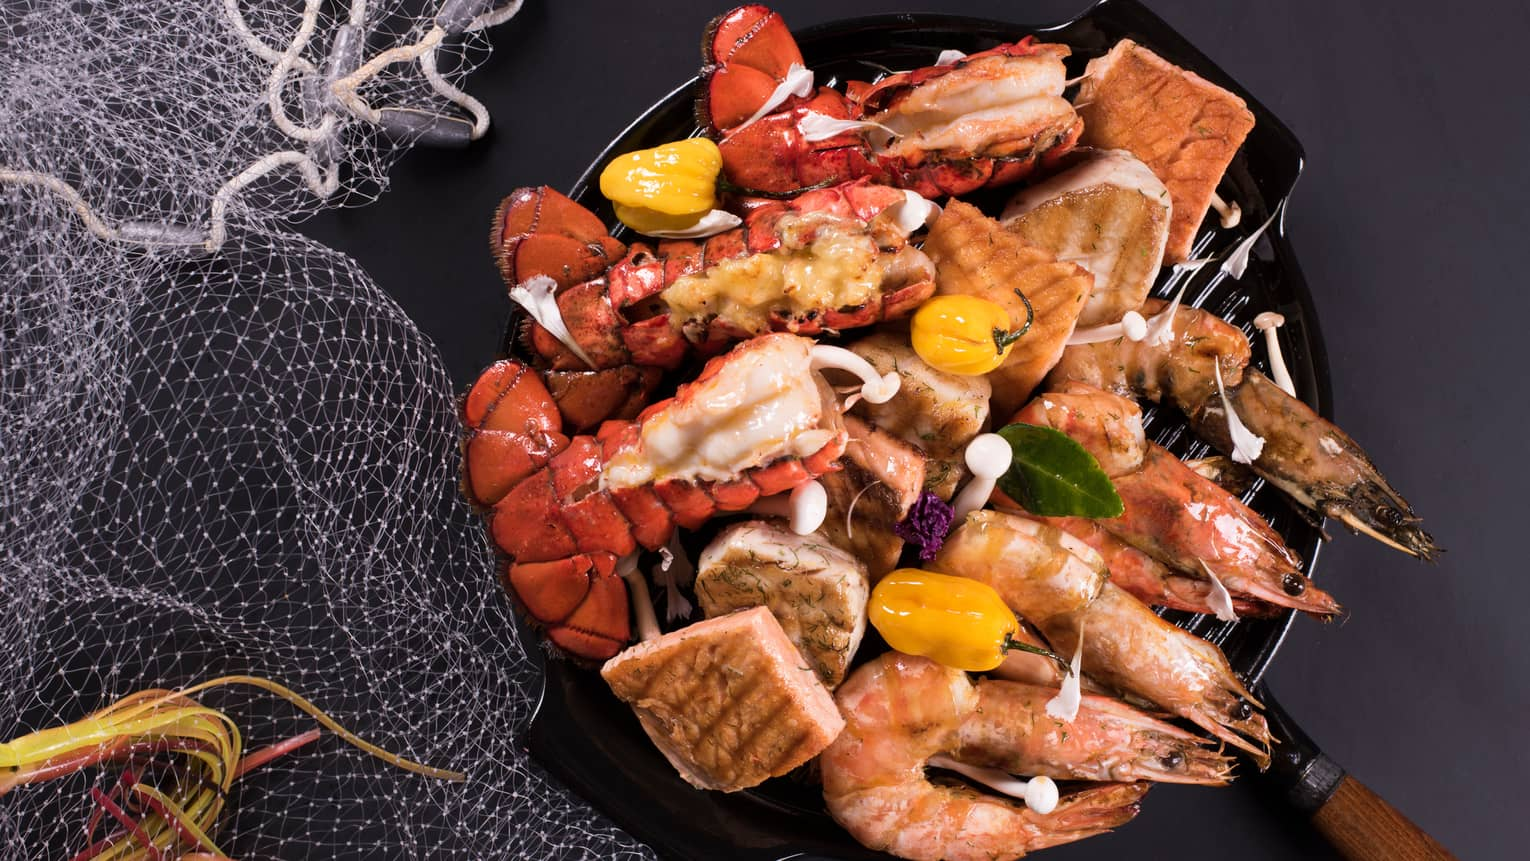 Seafood night platter in iron pan with rows of grilled jumbo shrimp, lobster tails, tuna fillets, whole yellow peppers